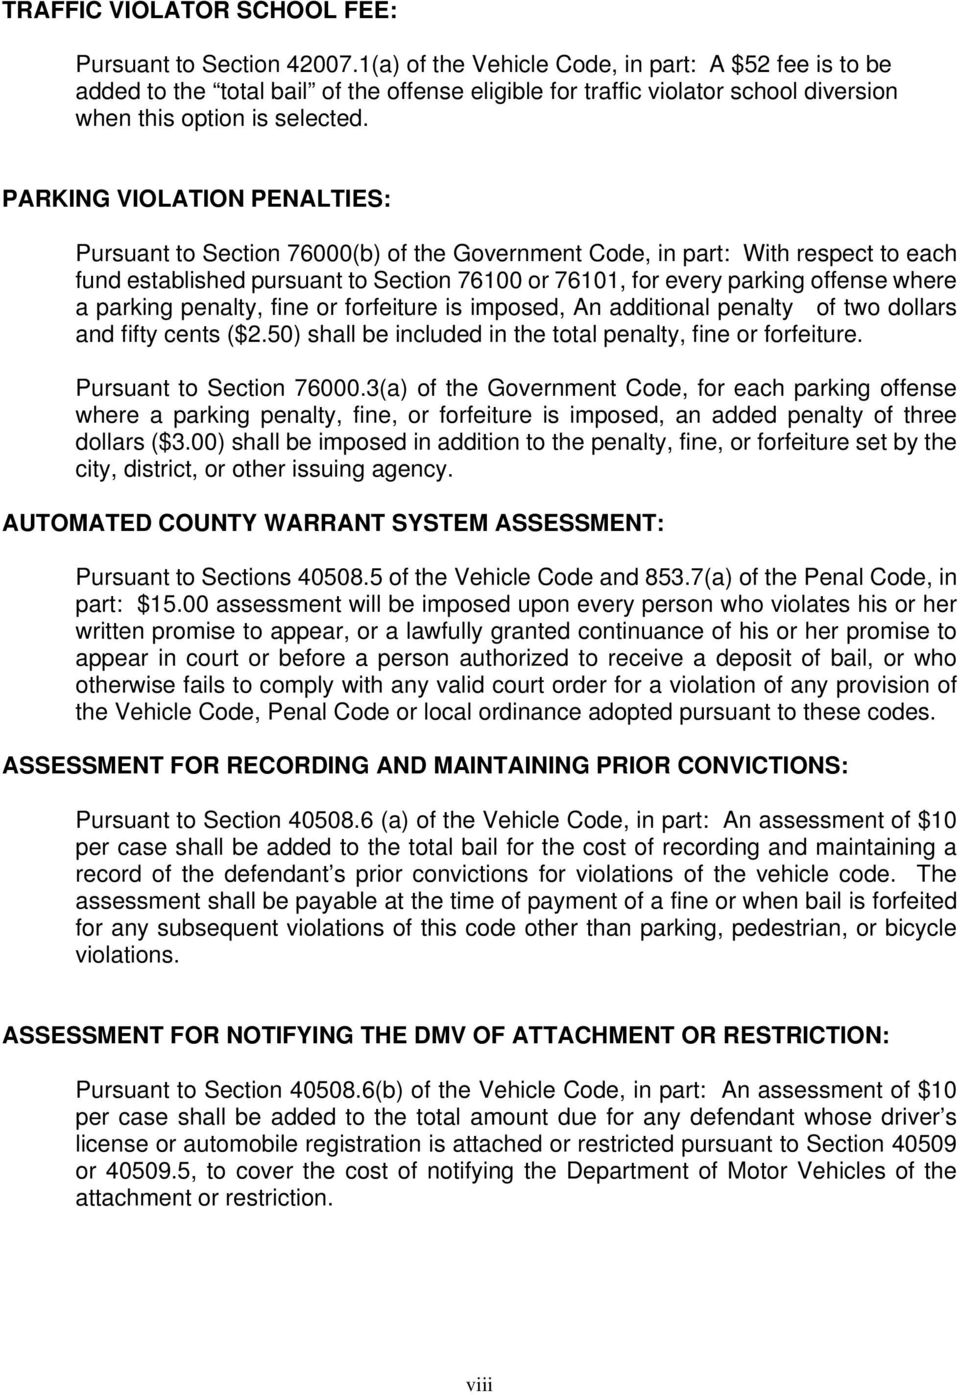 PARKING VIOLATION PENALTIES: Pursuant to Section 76000(b) of the Government Code, in part: With respect to each fund established pursuant to Section 76100 or 76101, for every parking offense where a